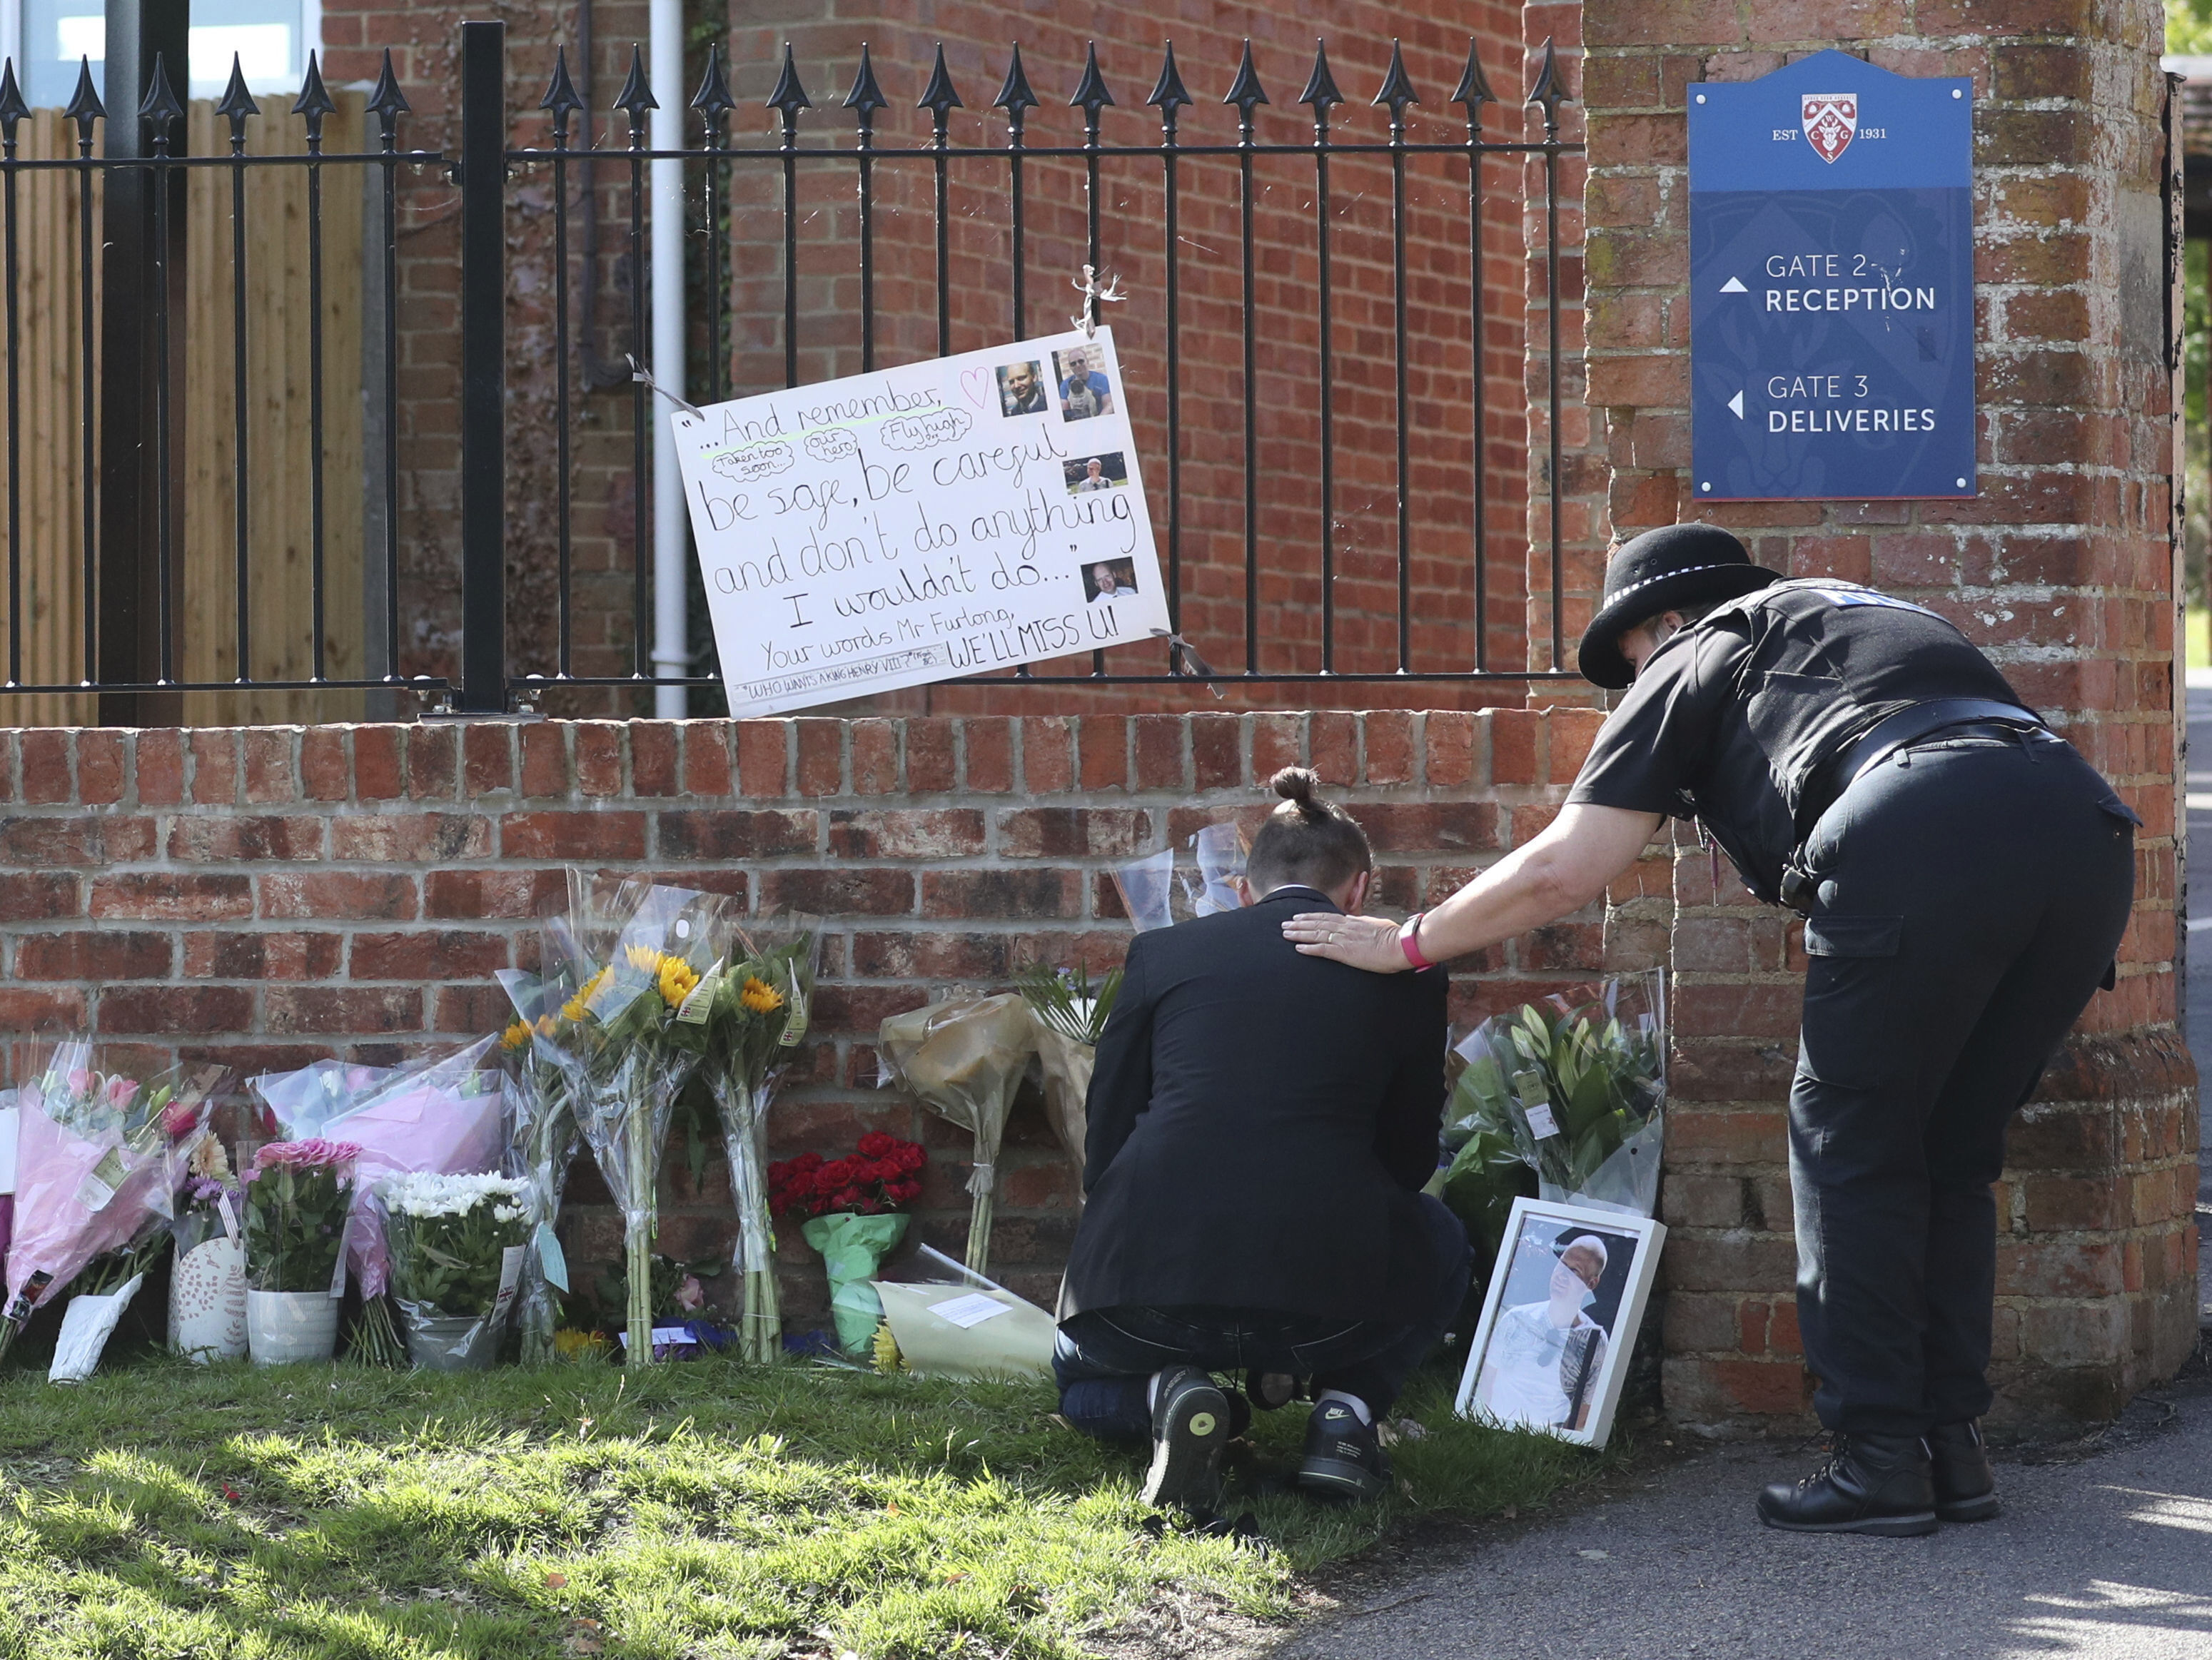 A mourner is comforted by a police officer as tributes are placed at the entrance to Holt School in Wokingham, England on June 22, 2020. A teacher at the school was killed in a stabbing attack in nearby Reading.